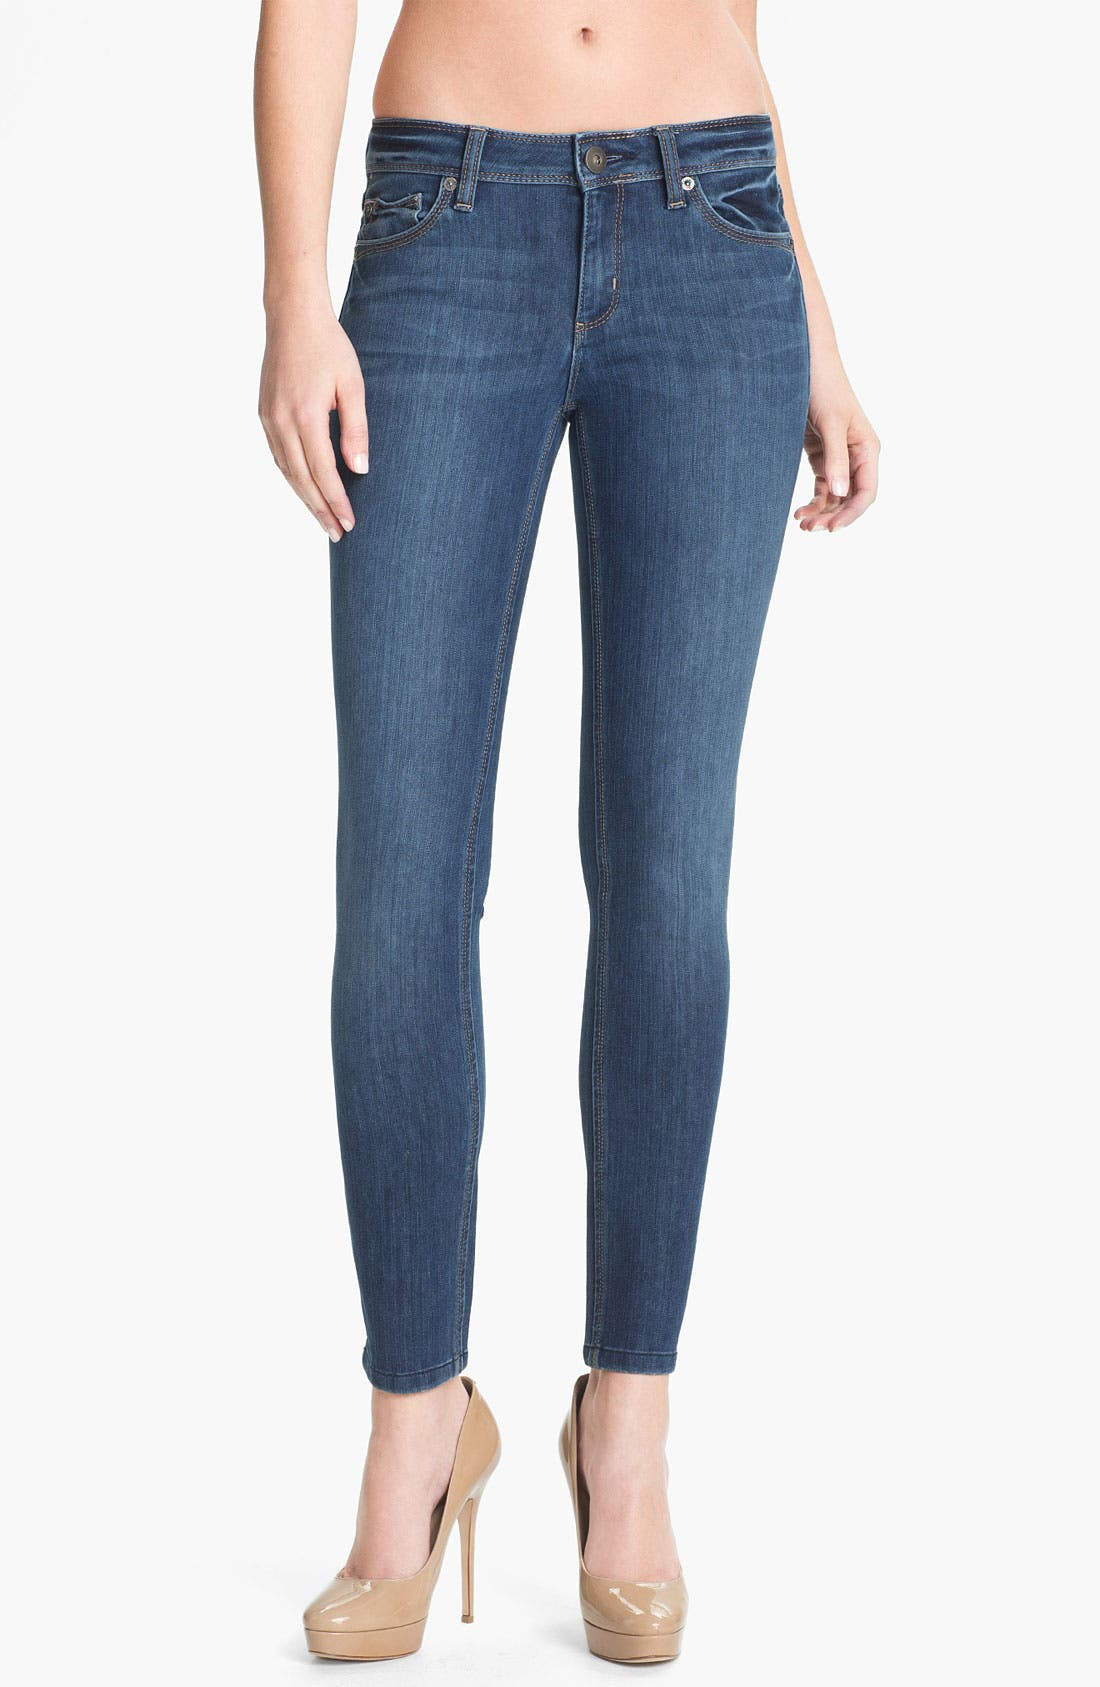 Alternate Image 1 Selected - DL1961 'Angel' X-Fit Stretch Denim Skinny Ankle Jeans (Zeppelin)